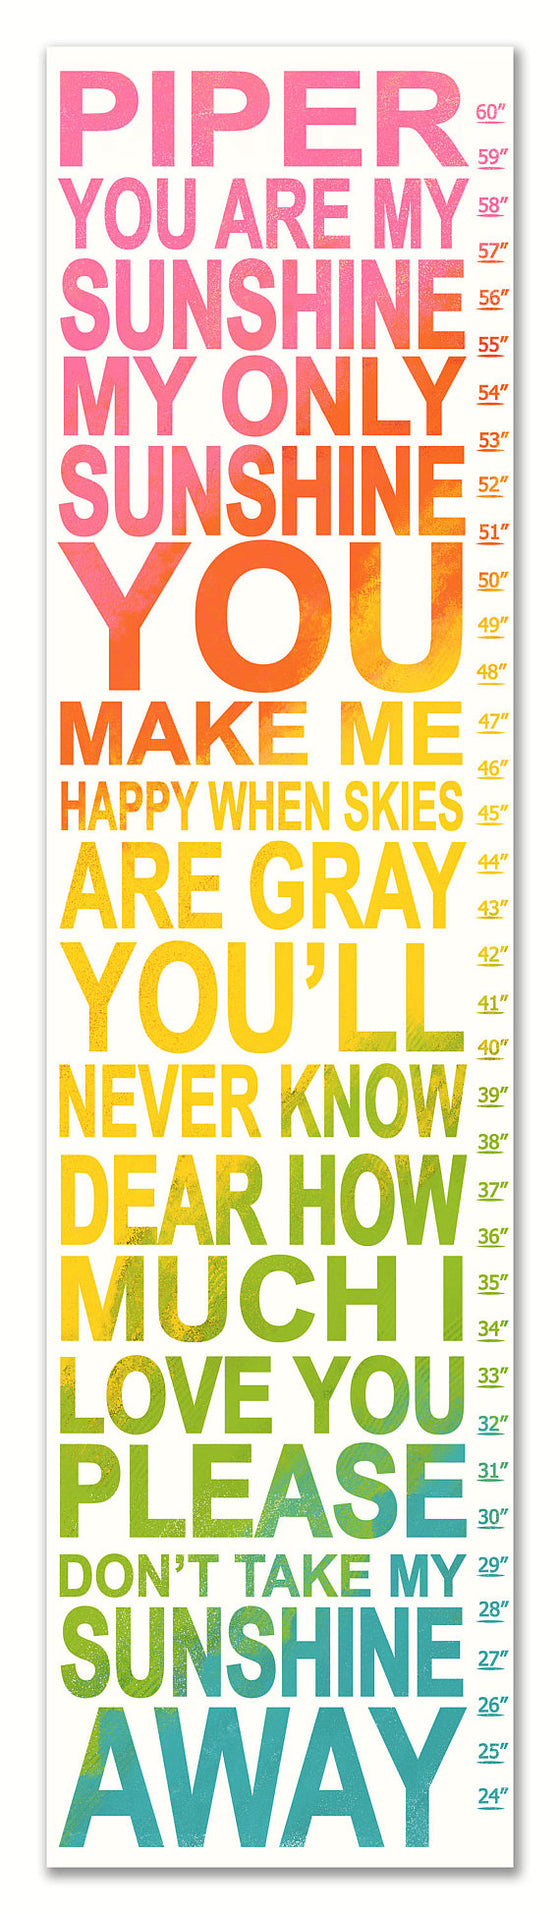 You Are My Sunshine Personalized Growth Chart - Nursery Decor